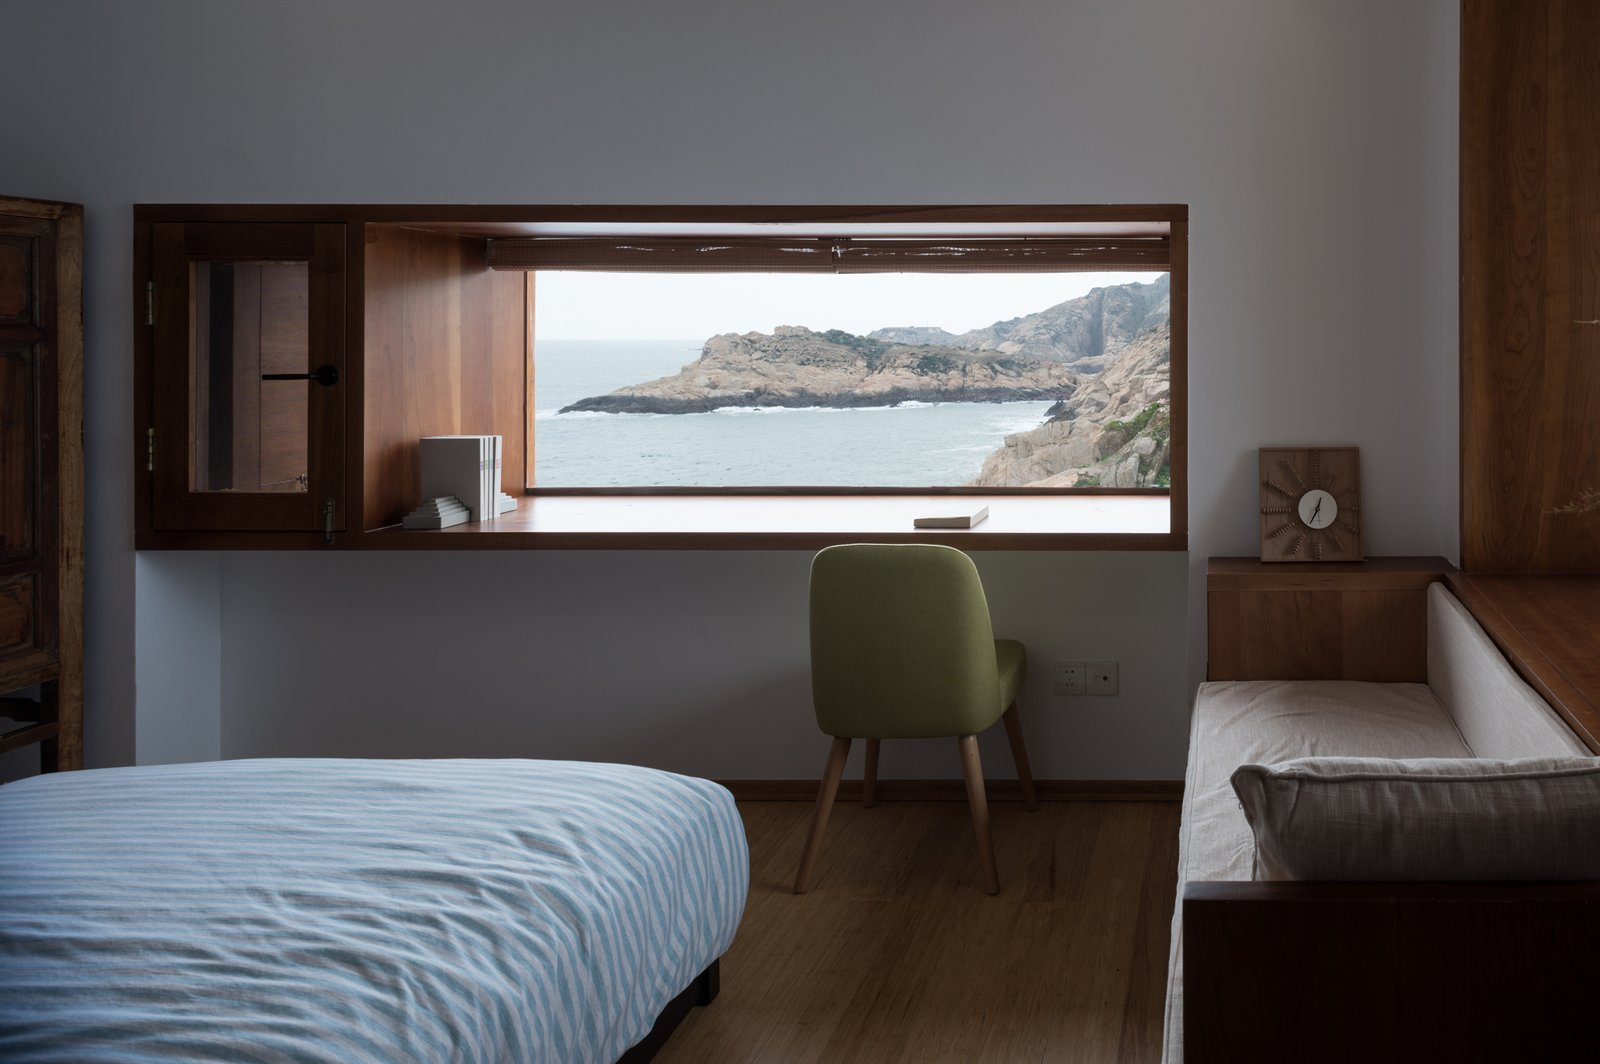 A window nook is used as a study desk in the bedroom.